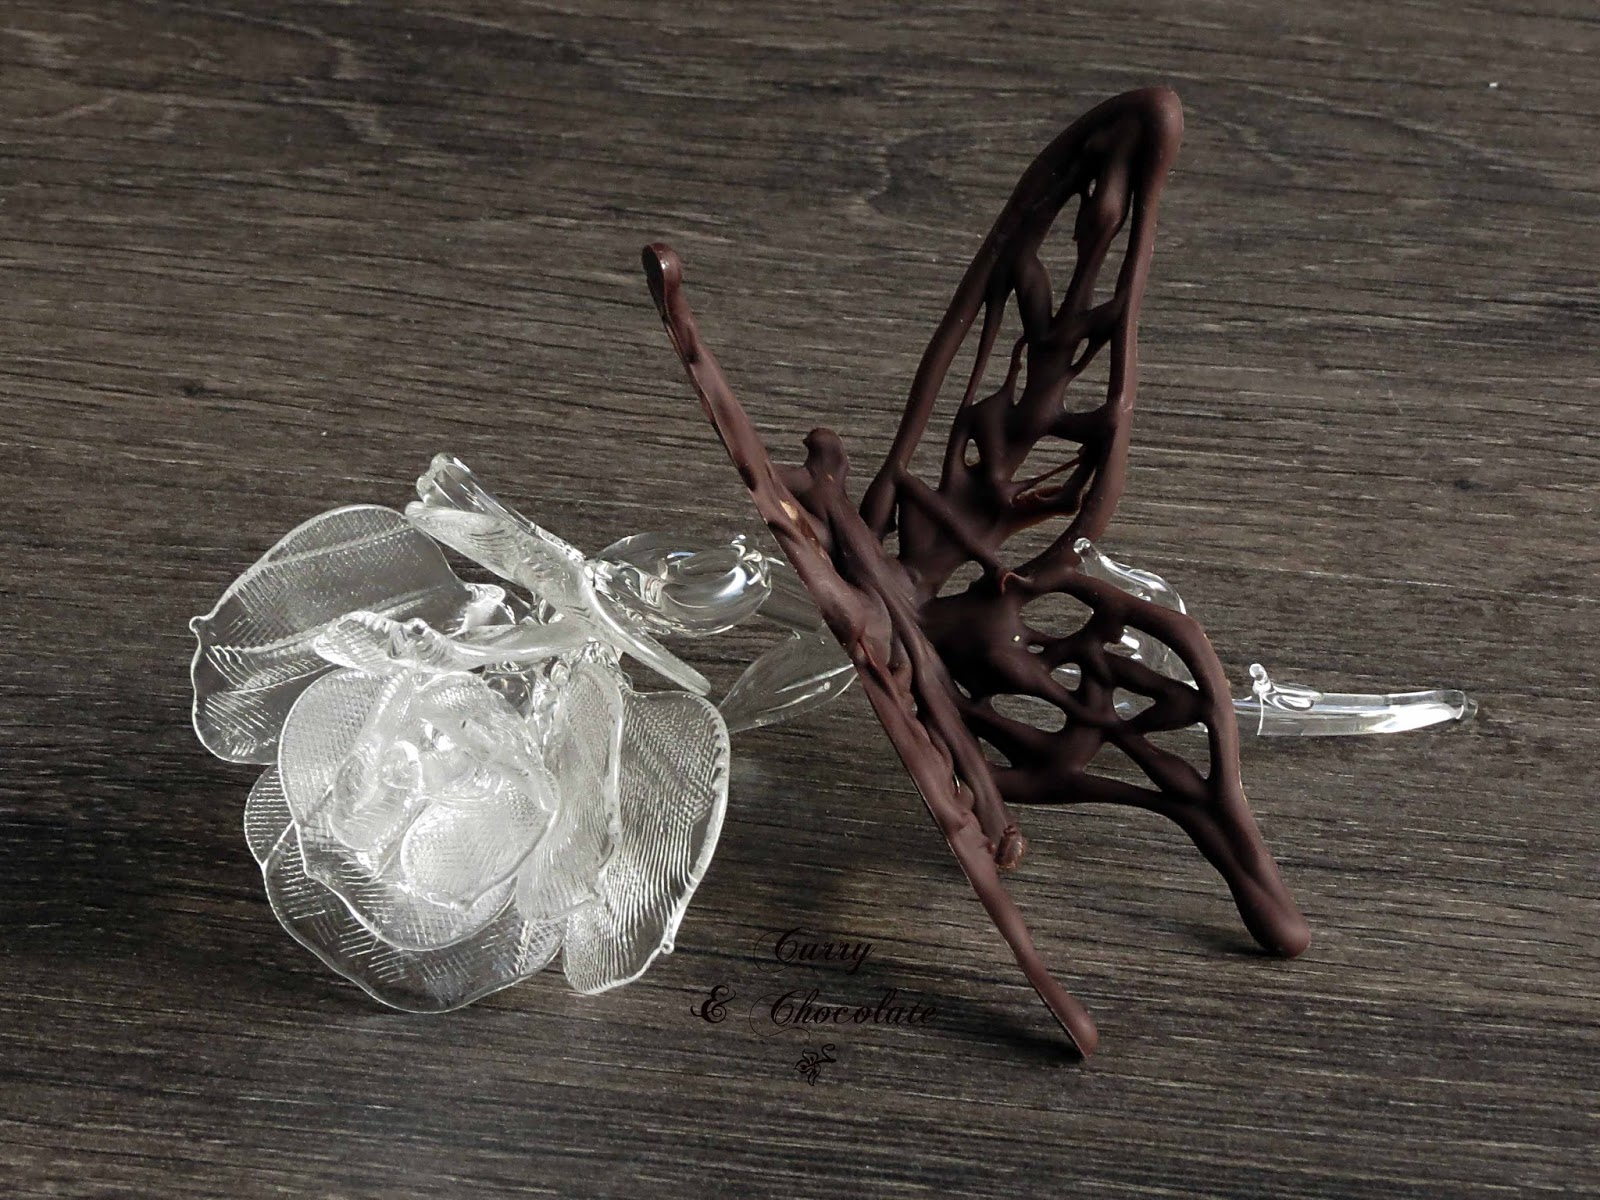 Cómo hacer mariposas de chocolate – How to make chocolate butterflies